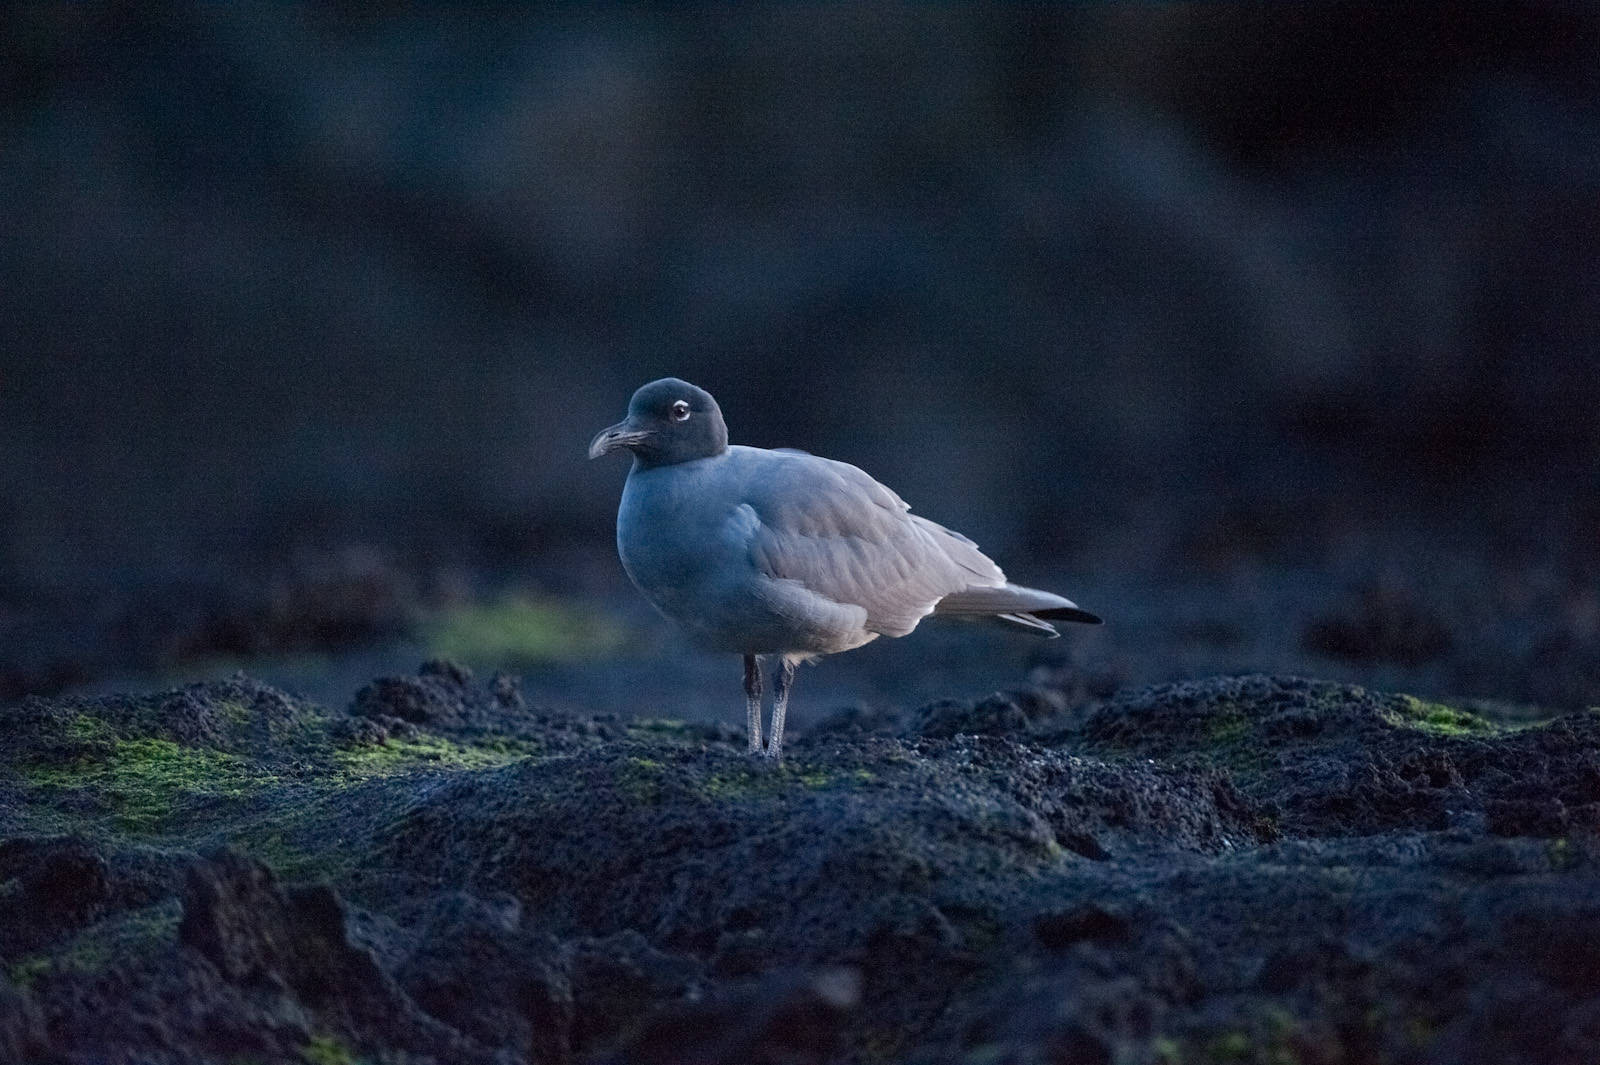 Photo: Lava birds (Leucophaeus fuliginosus) on San Cristobal Island (formerly known as Chatham Island). Lava gulls are one of the rarest birds in the world with a population of less than 300.